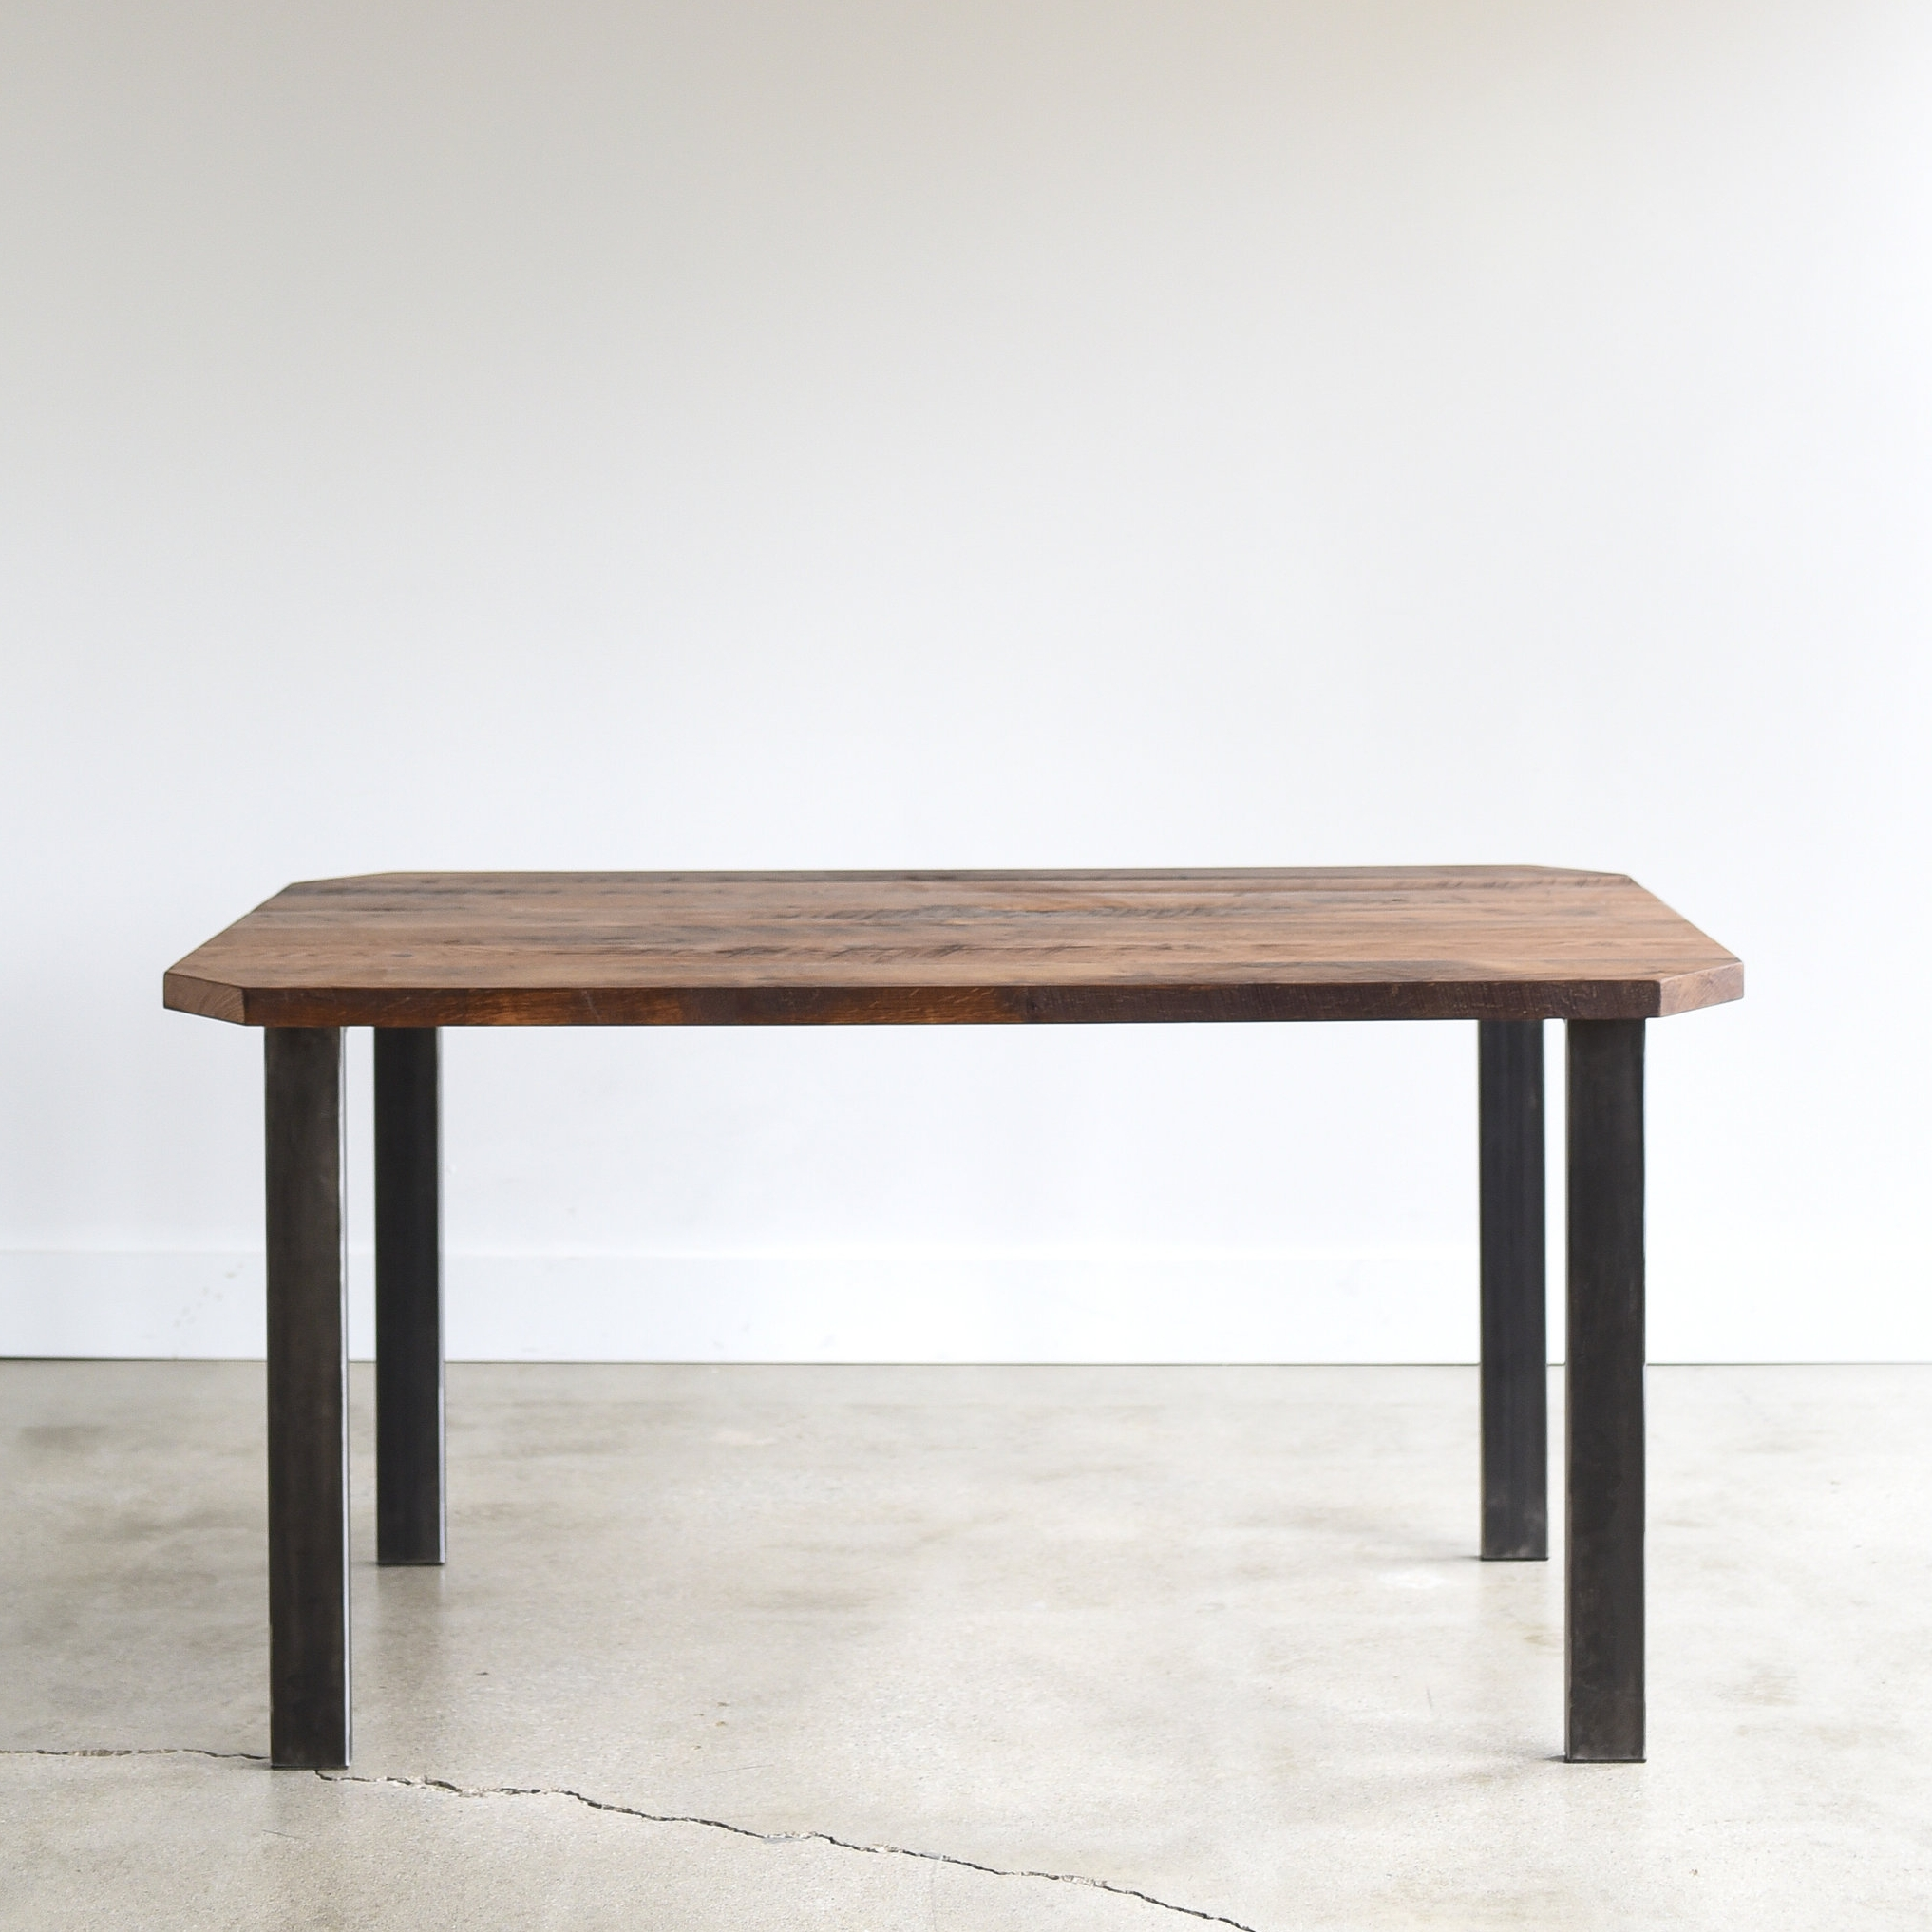 Reclaimed Wood Clipped Corners Dining Table / Metal Post Legs - WHAT WE MAKE